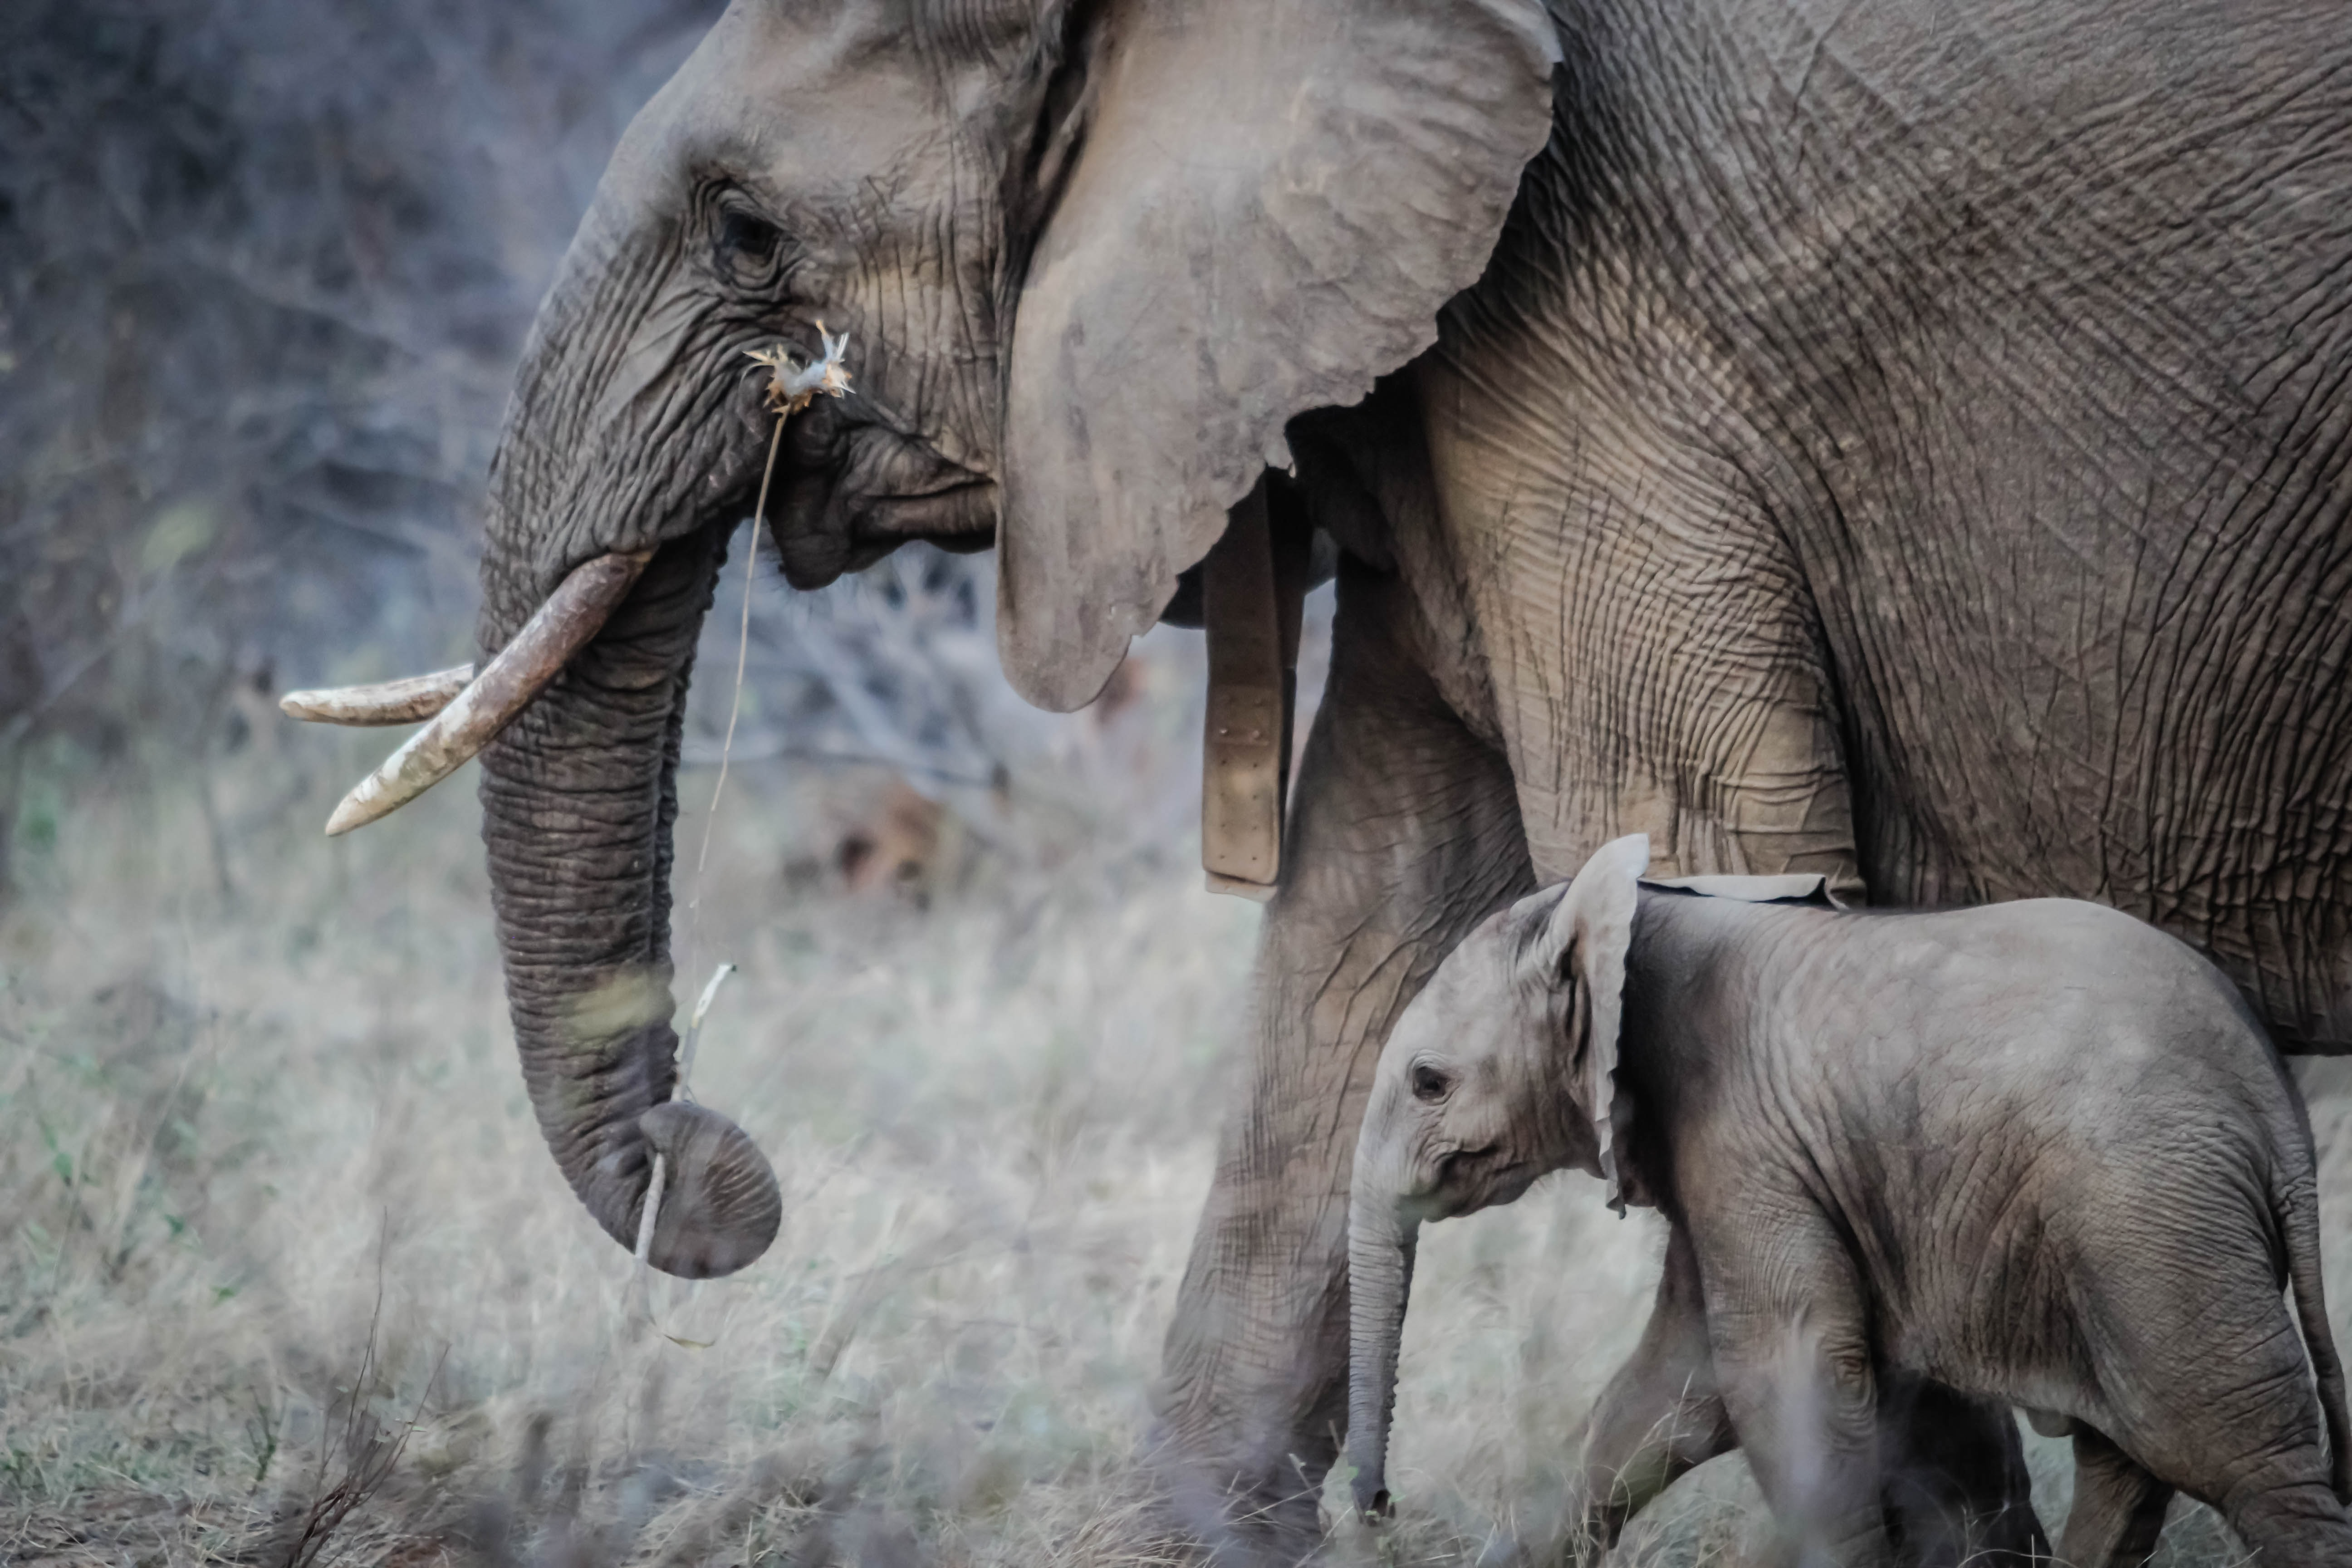 An elephant with ivory tusks walking next to a baby elephant in the wild